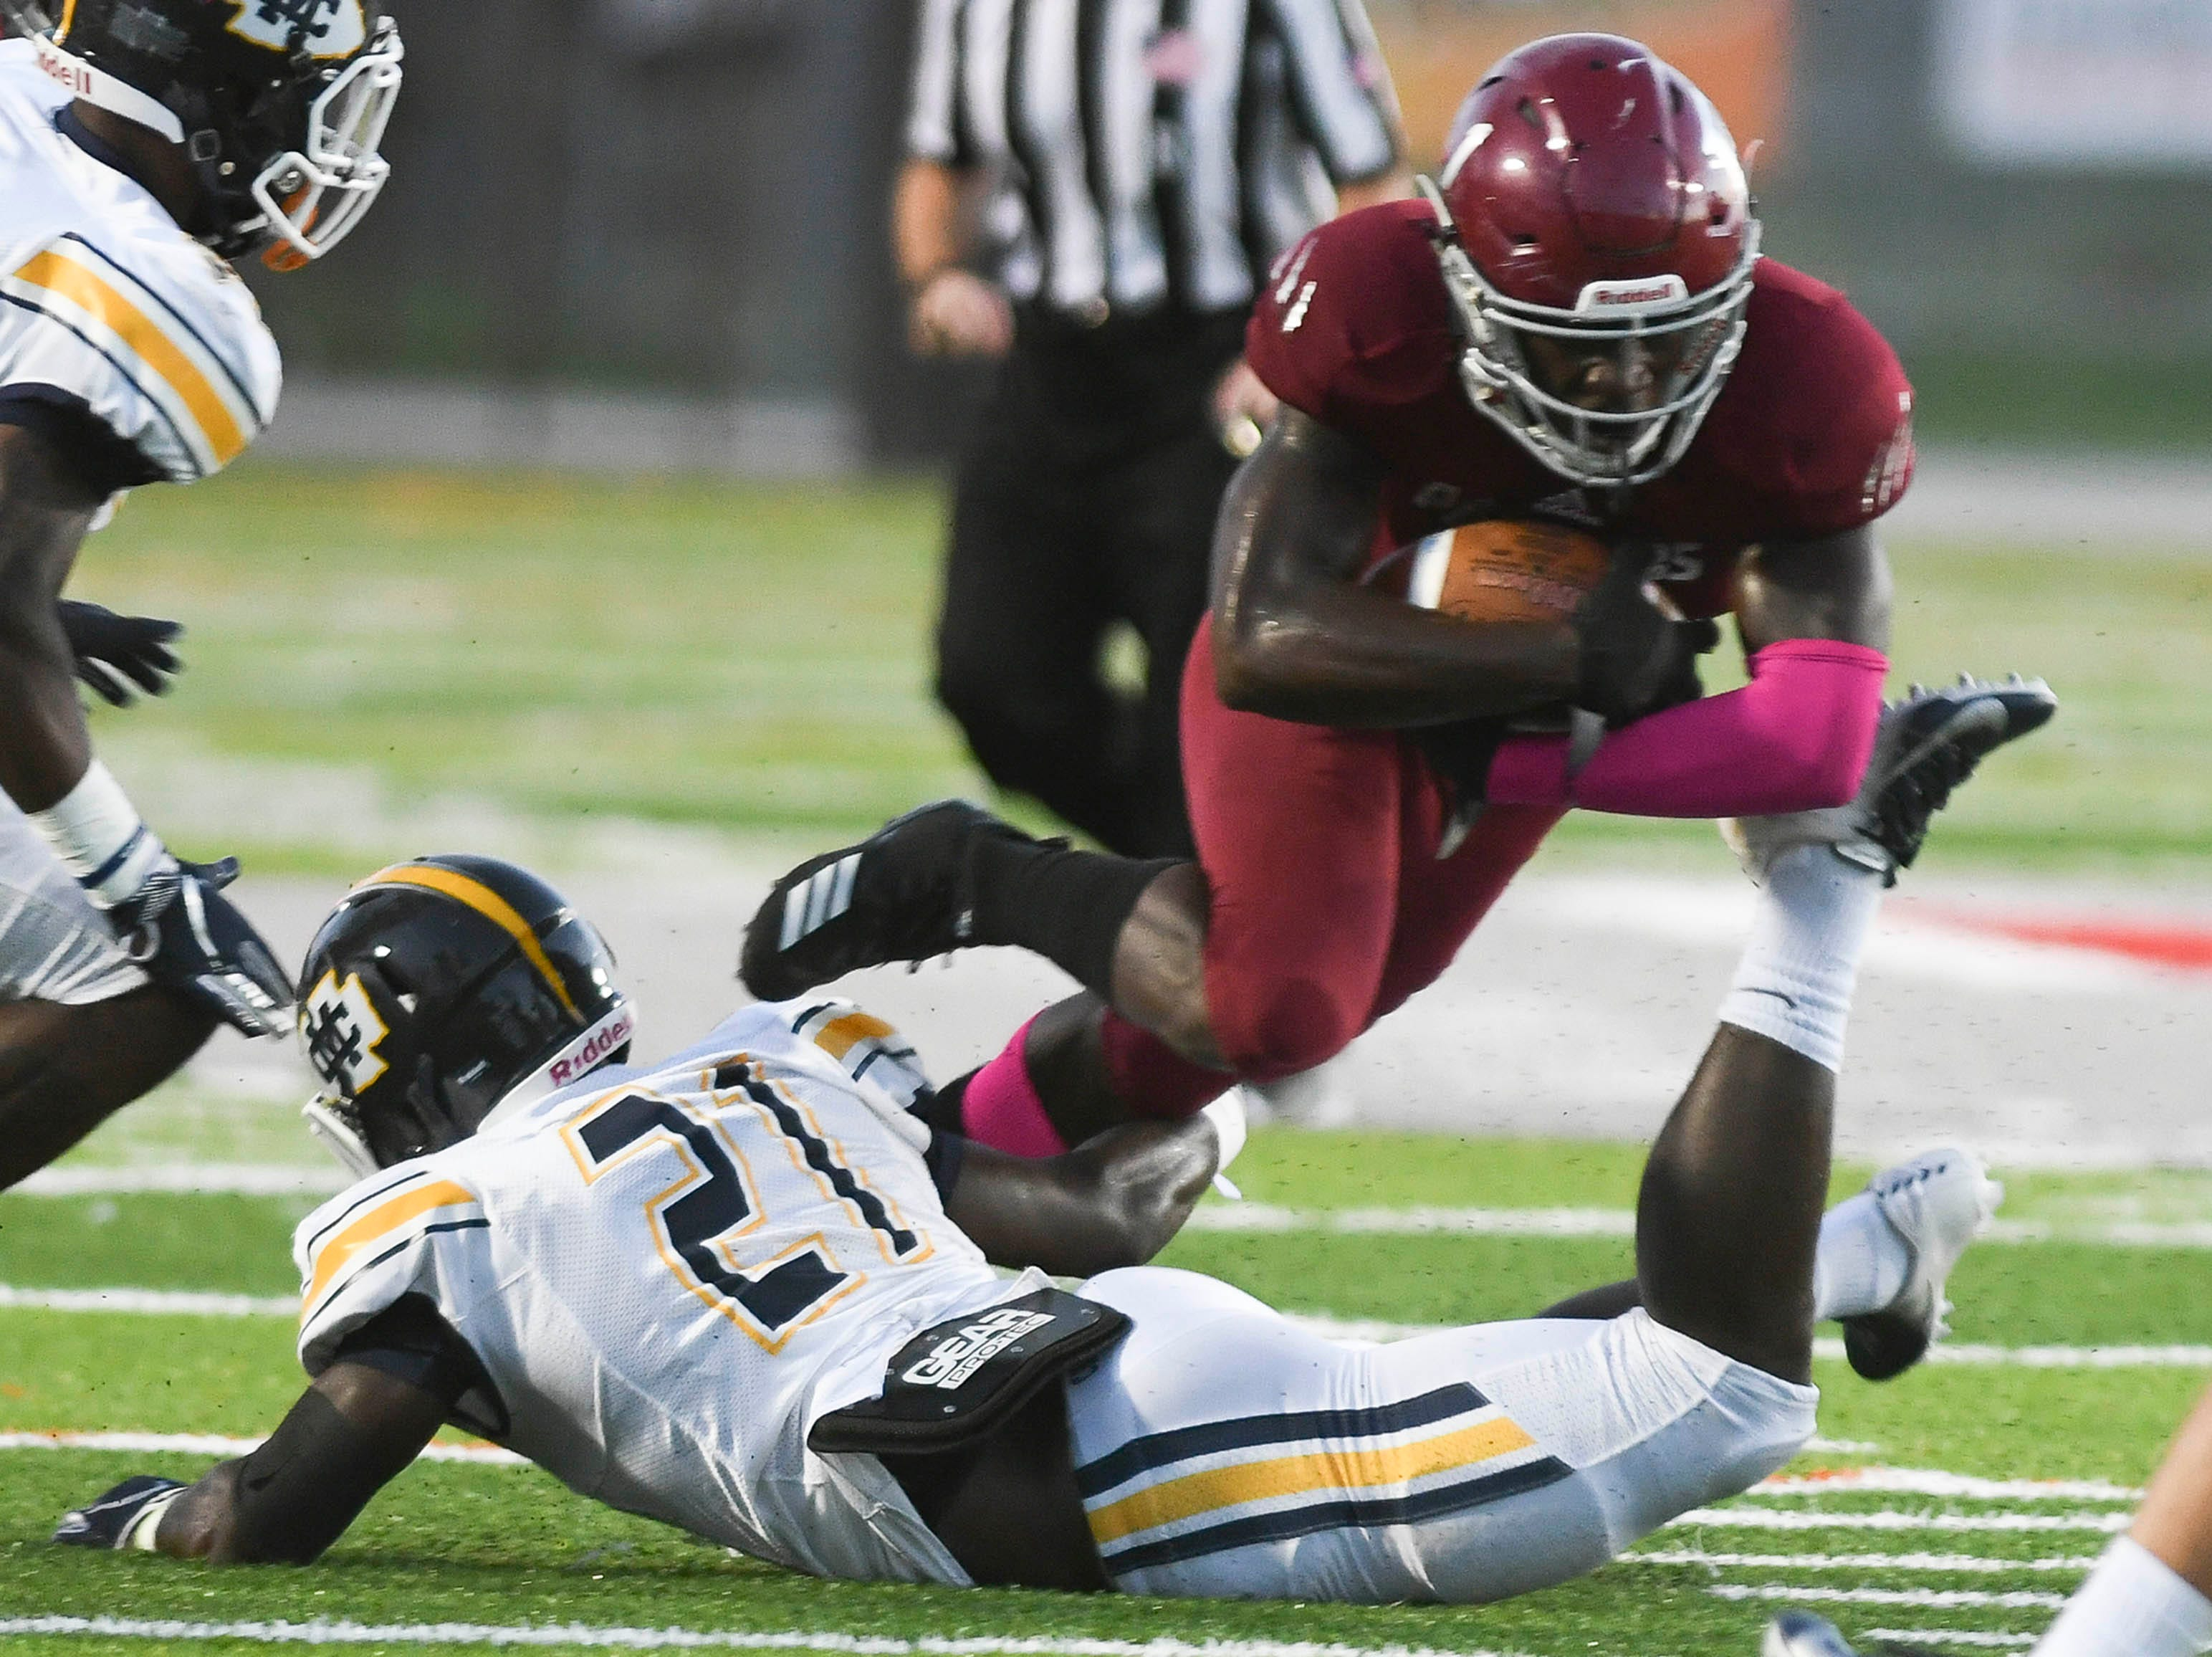 Romell Guerrier of Florida Tech is brought down by Colton Magee of Mississippi College during Saturday's game at Panther Stadium